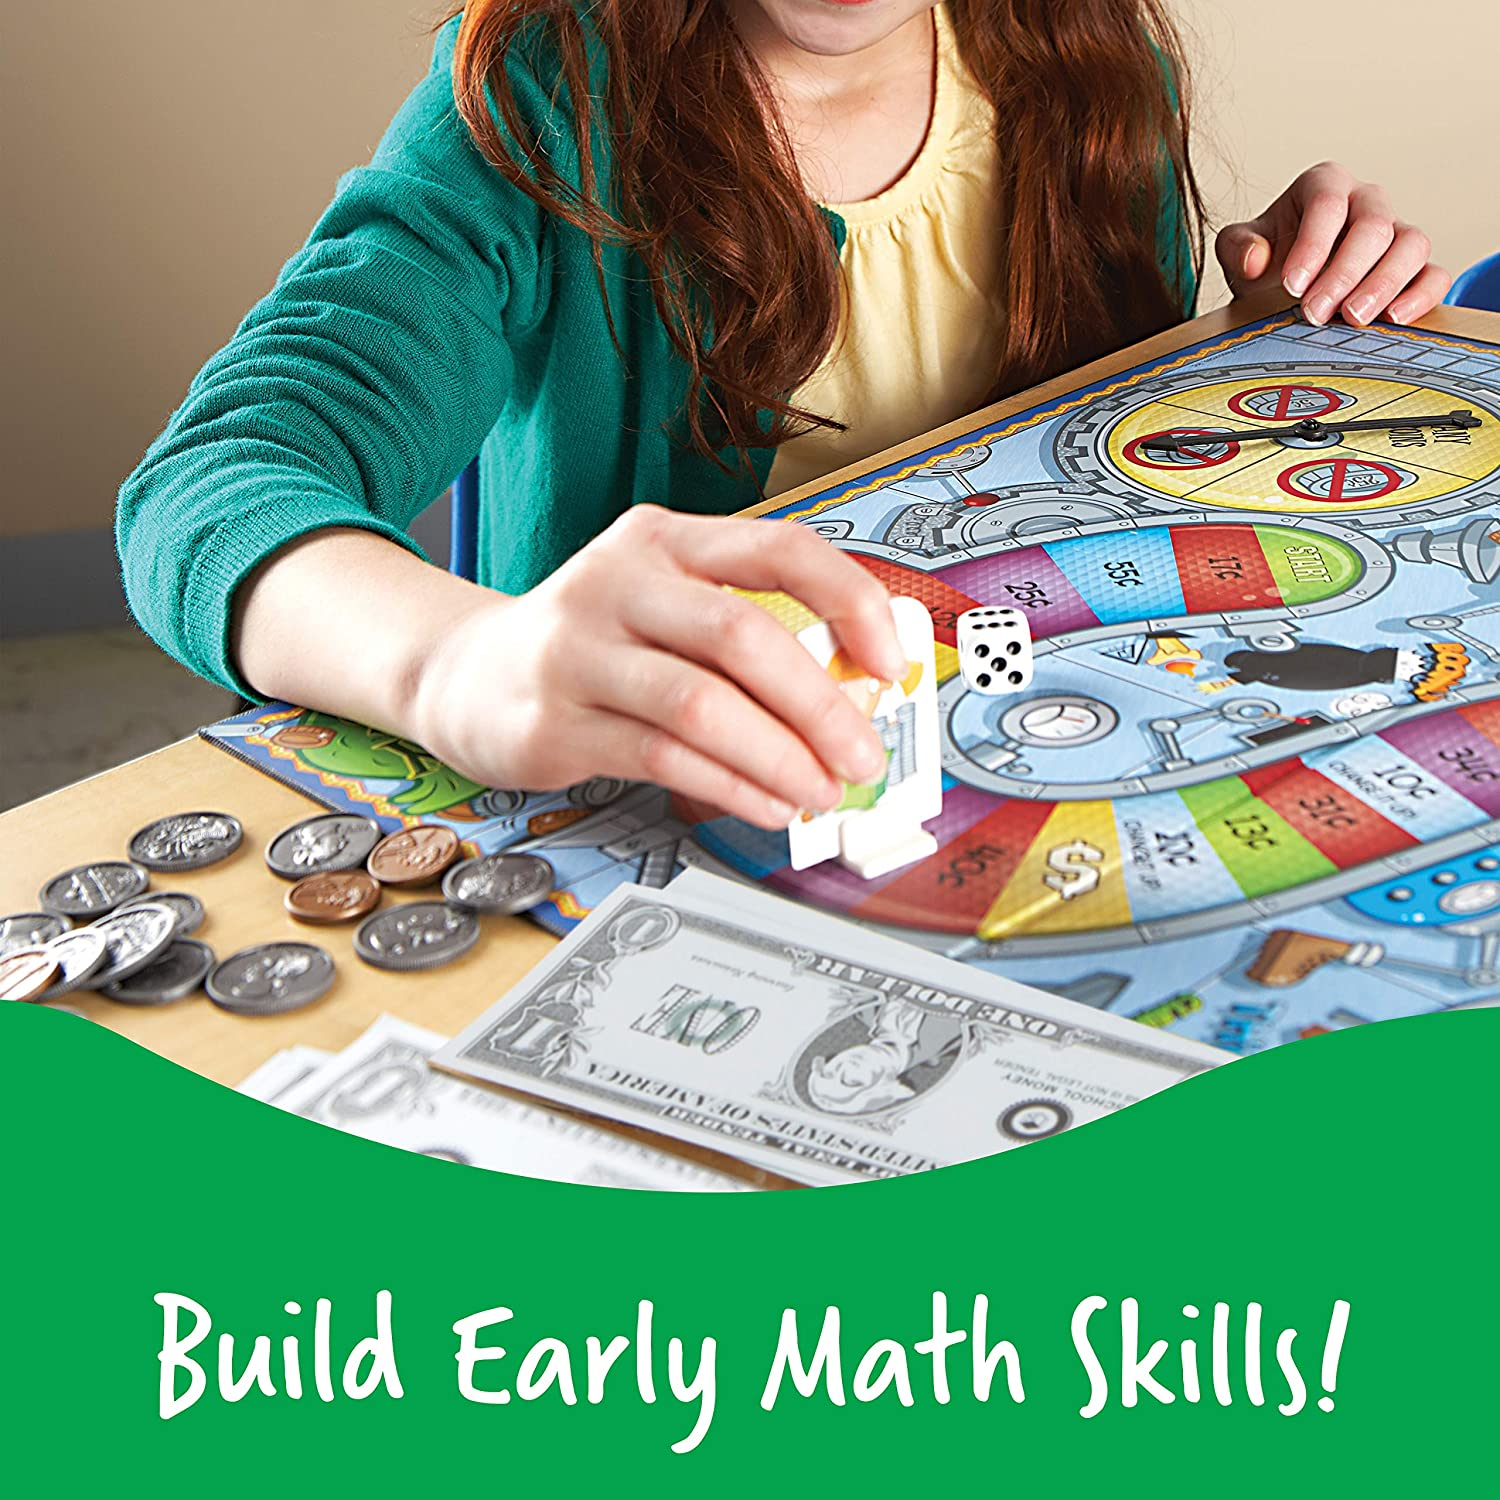 Make Your Money Count board game Counting Money Education for Kids